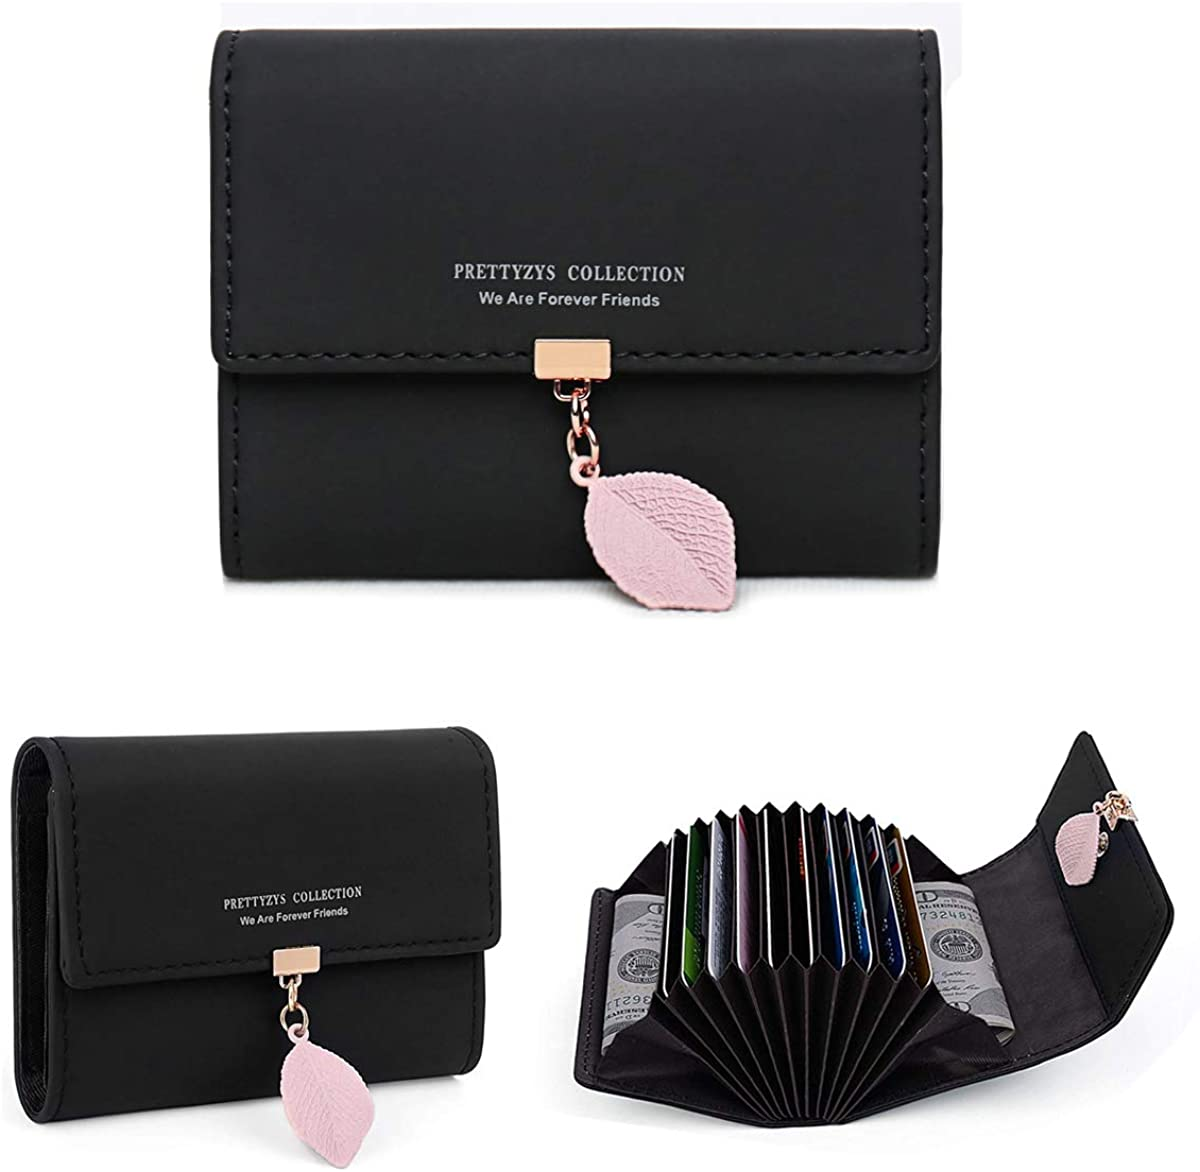 DLseego Small Fresh Women Wallets Soft Phoenix Mall Card Credit Ho Leather PU Free shipping on posting reviews